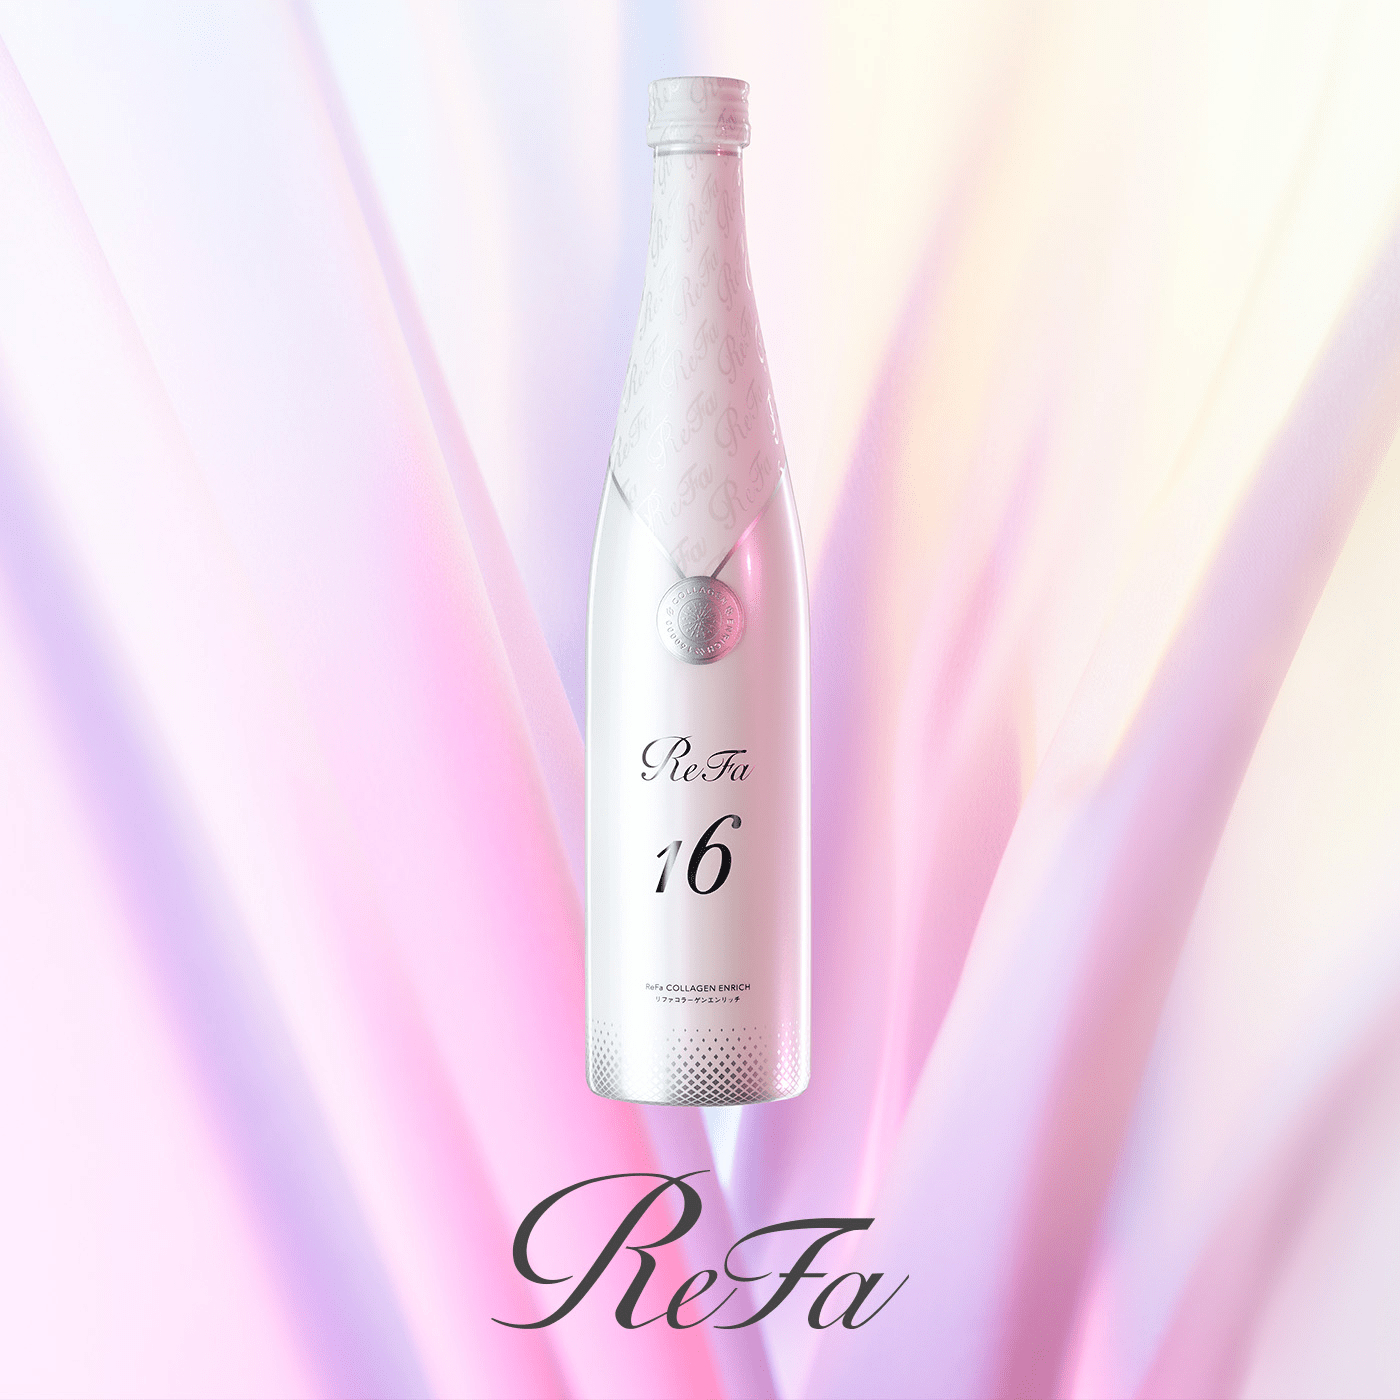 160,000mg of highly concentrated, high-purity, low-molecular collagen. Introducing ReFa COLLAGEN ENRICH, for a new collagen experience that brings out the beauty of your skin and your whole body as well.